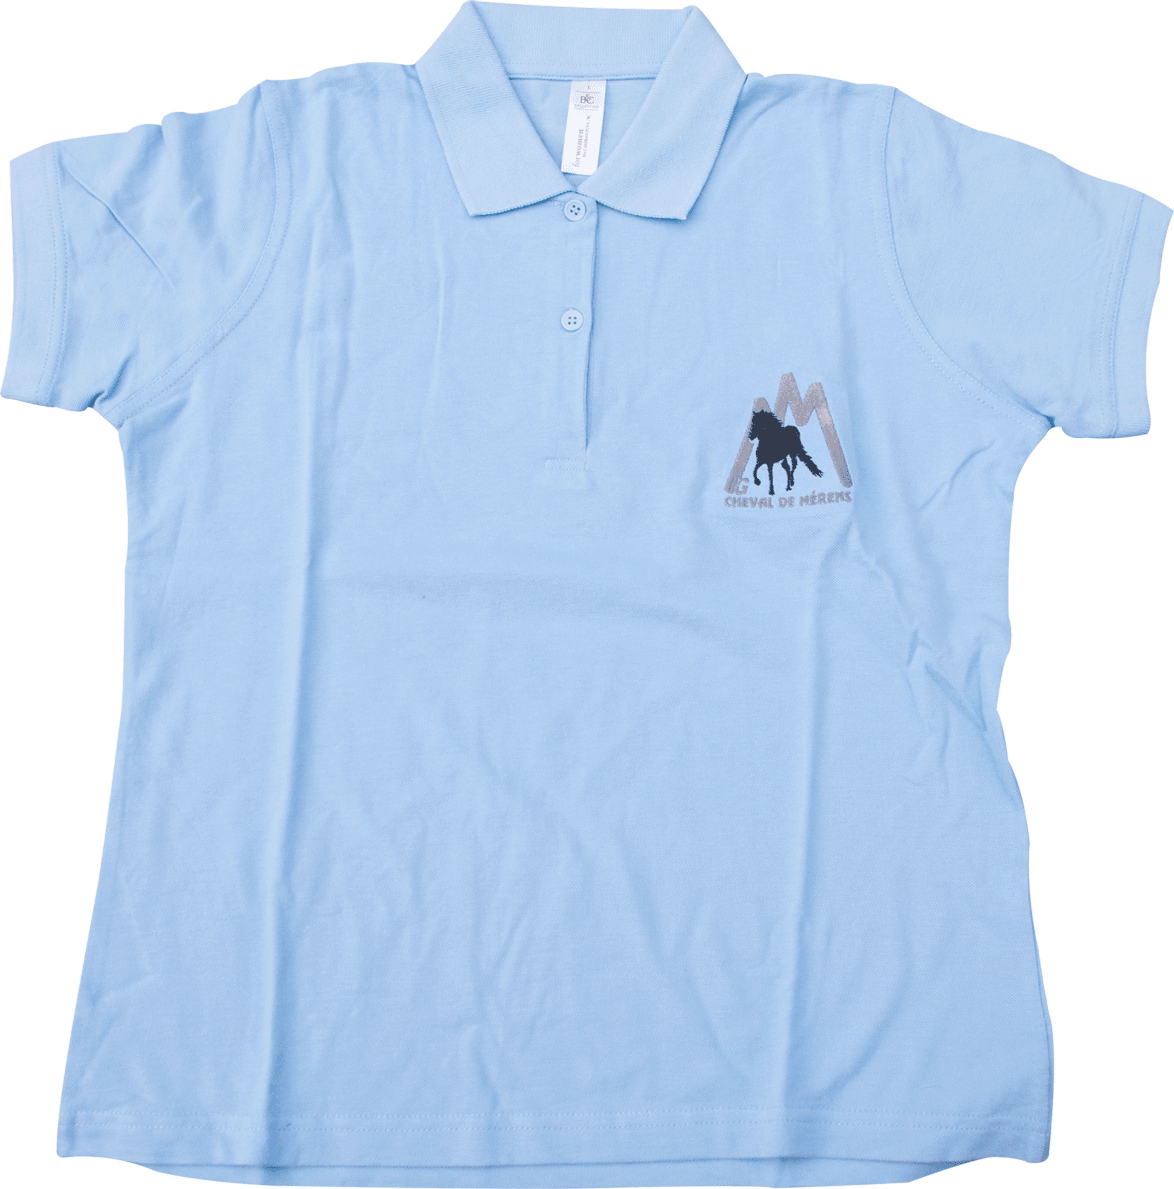 Polo Shirt merens3